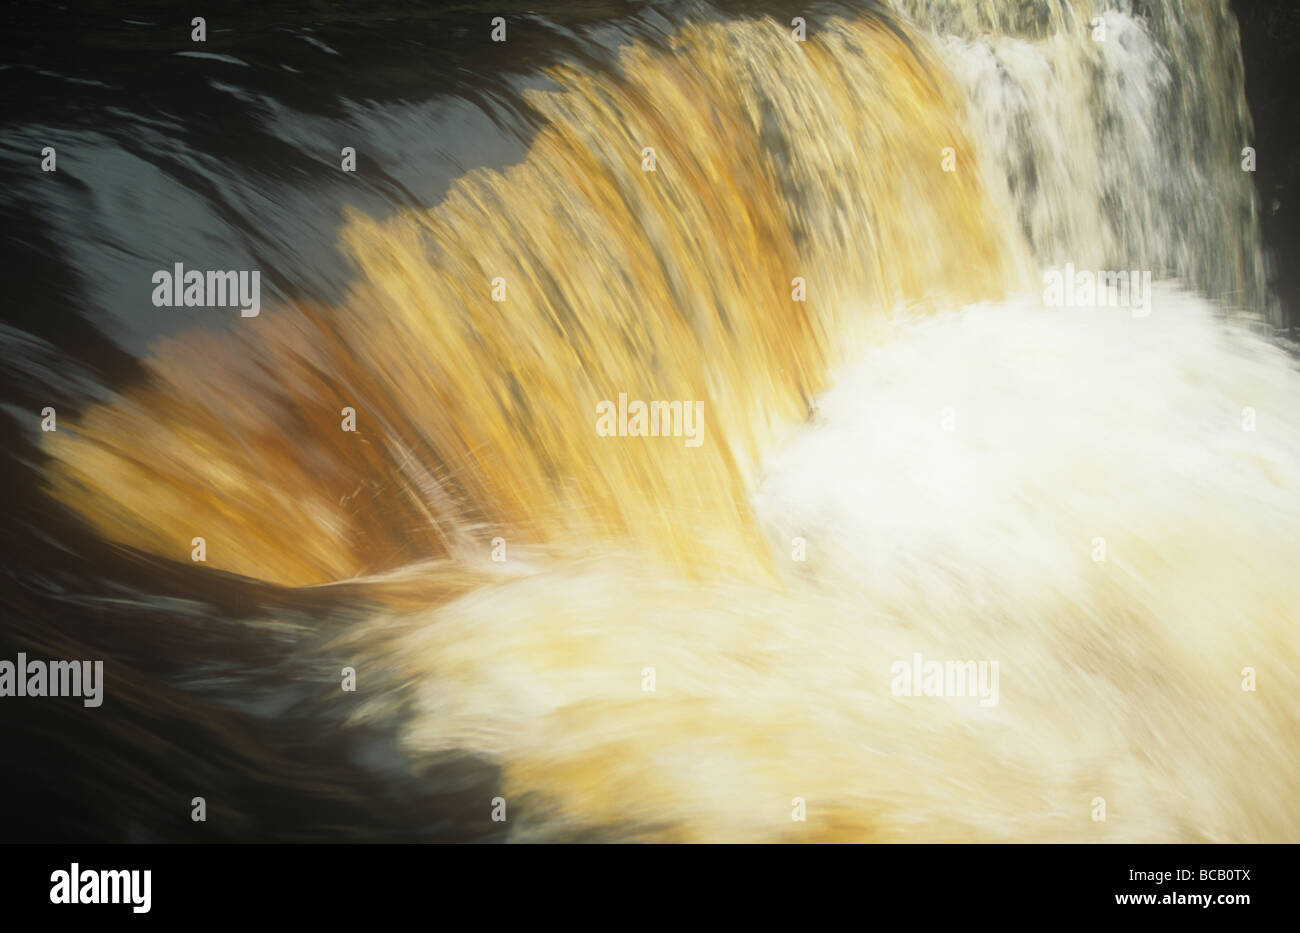 Water stained with peat in Swaledale Yorkshire Dales UK - Stock Image